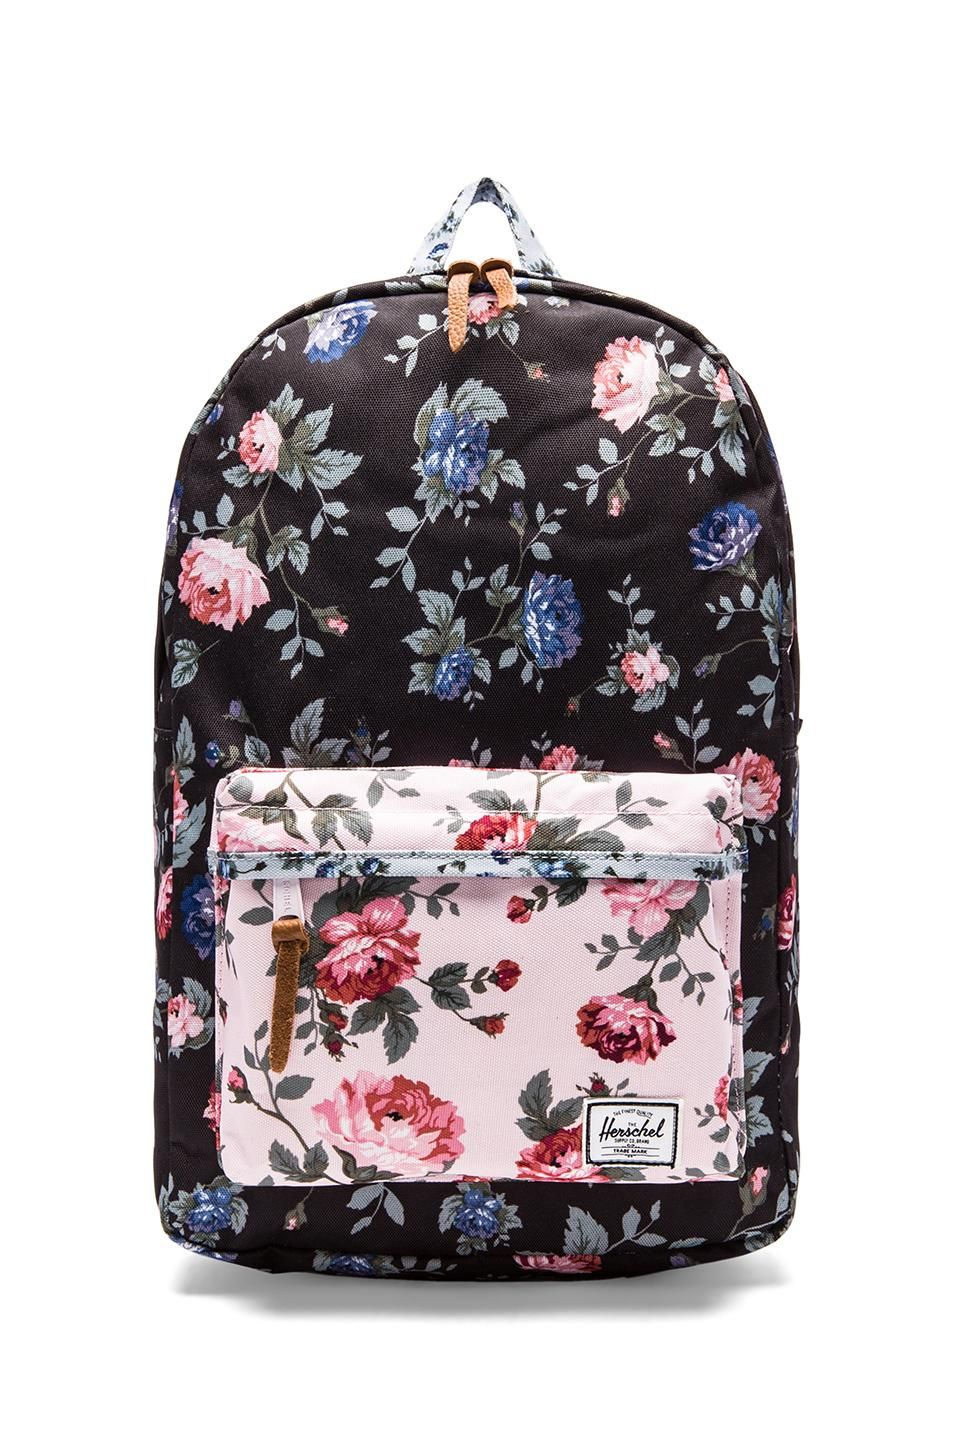 7bf4c585e45 Herschel Supply Co. Fine China Collection Heritage Backpack in Black ...